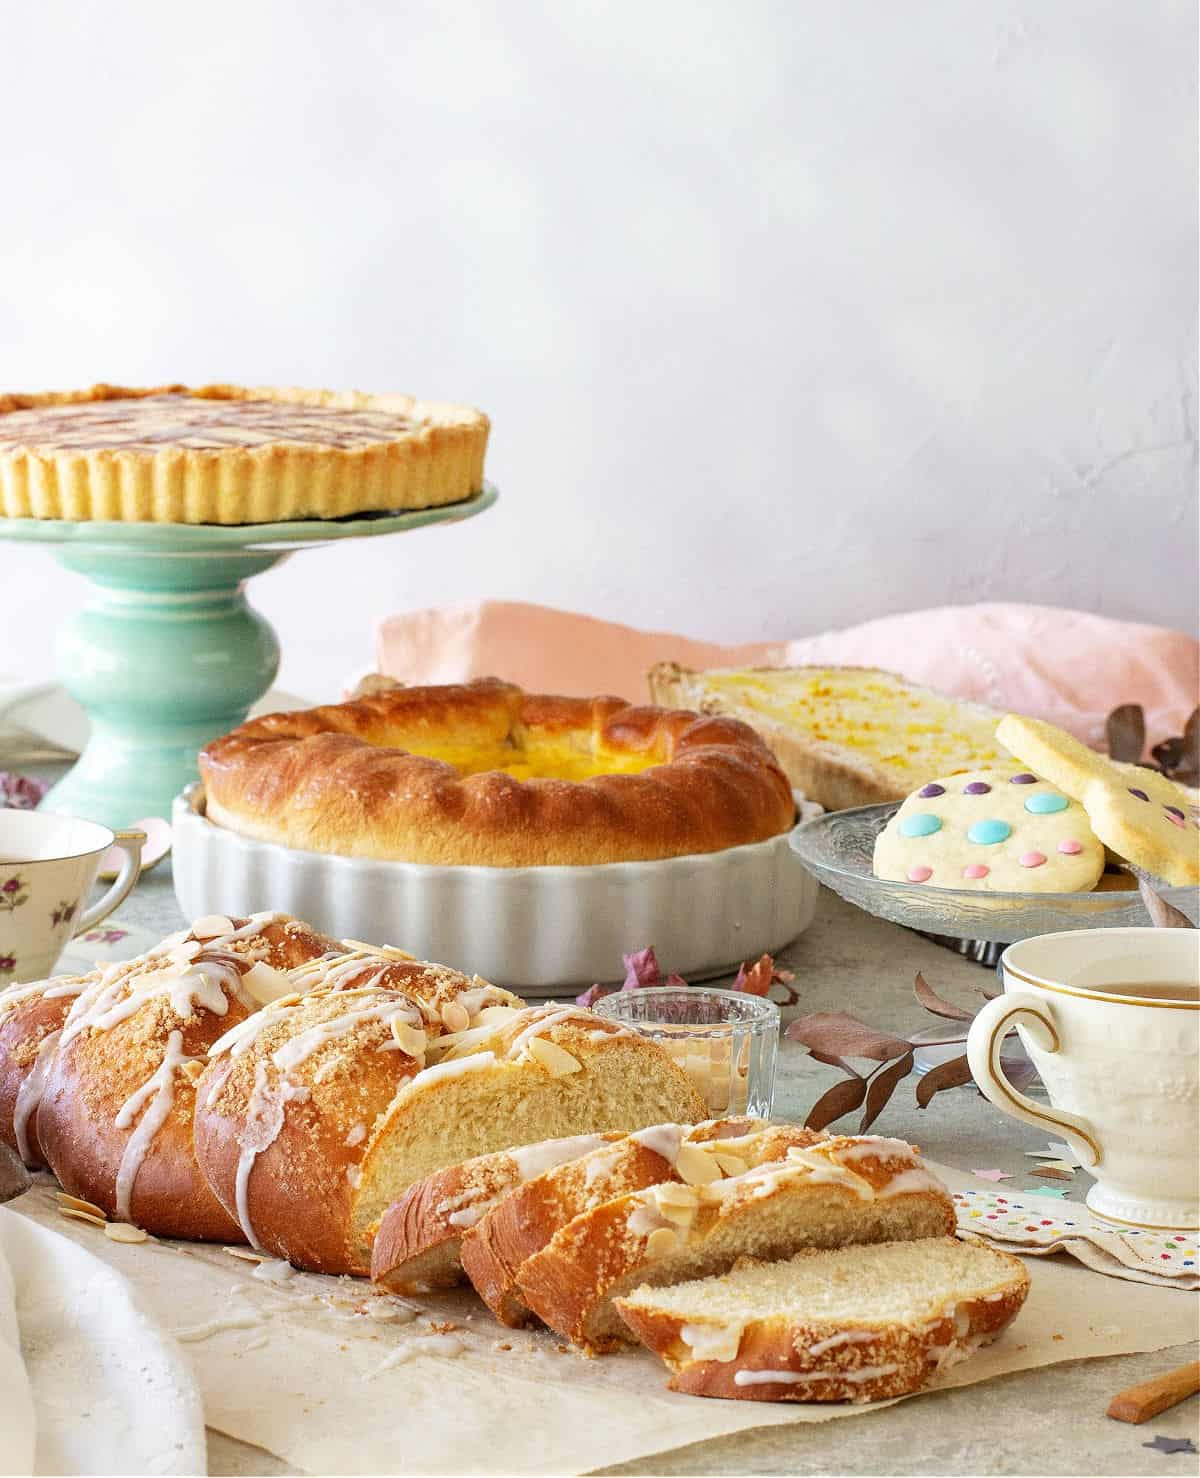 An Easter brunch table with a pie on a green stand, cookies, braided breads, a pie, a cup of tea